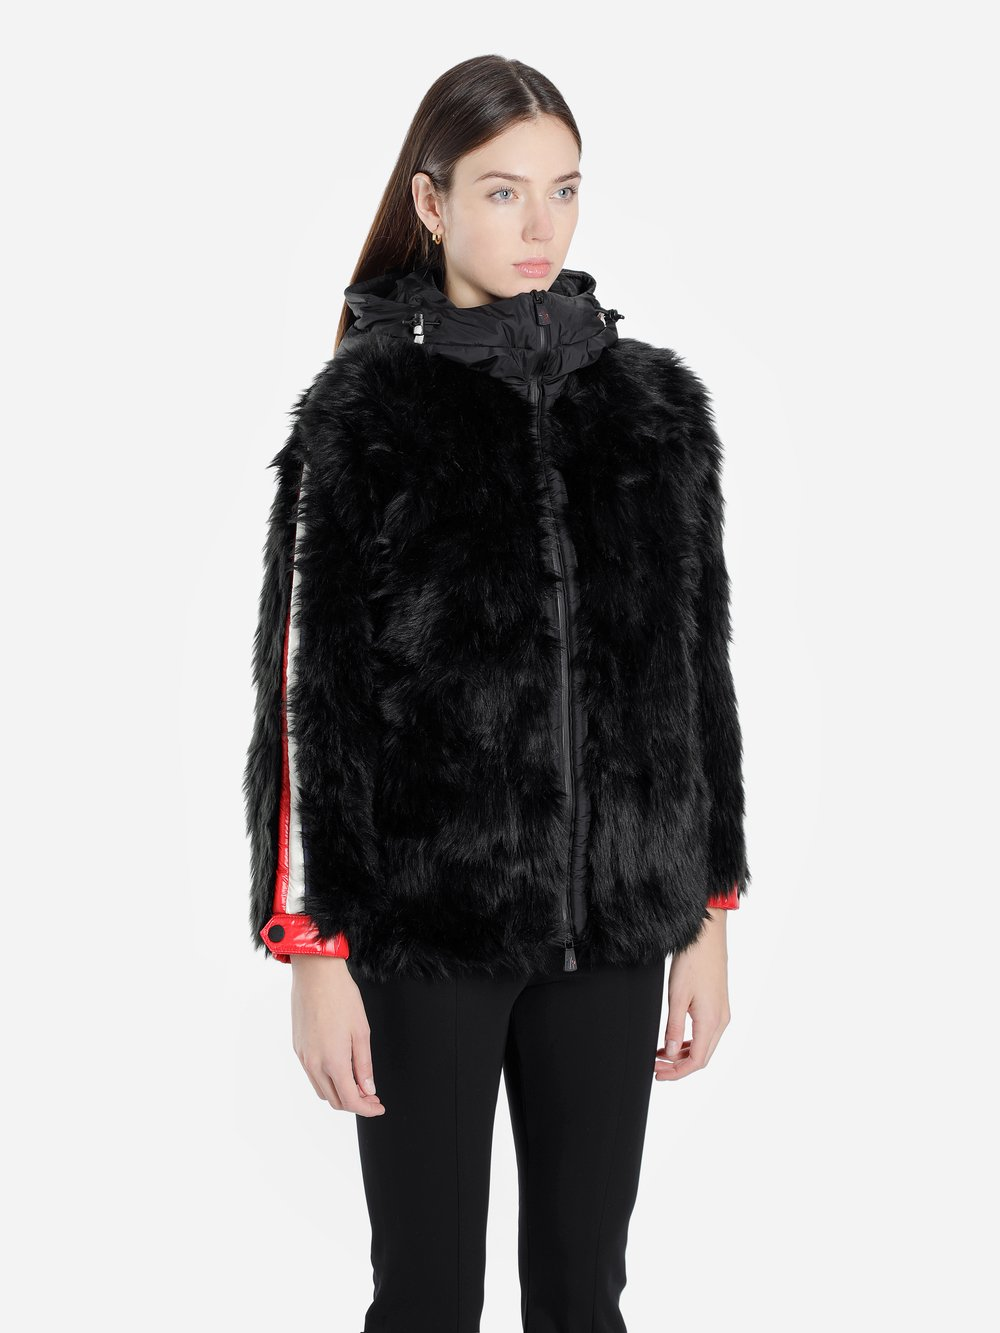 Moncler Grenoble Jackets 8453300899A7 999